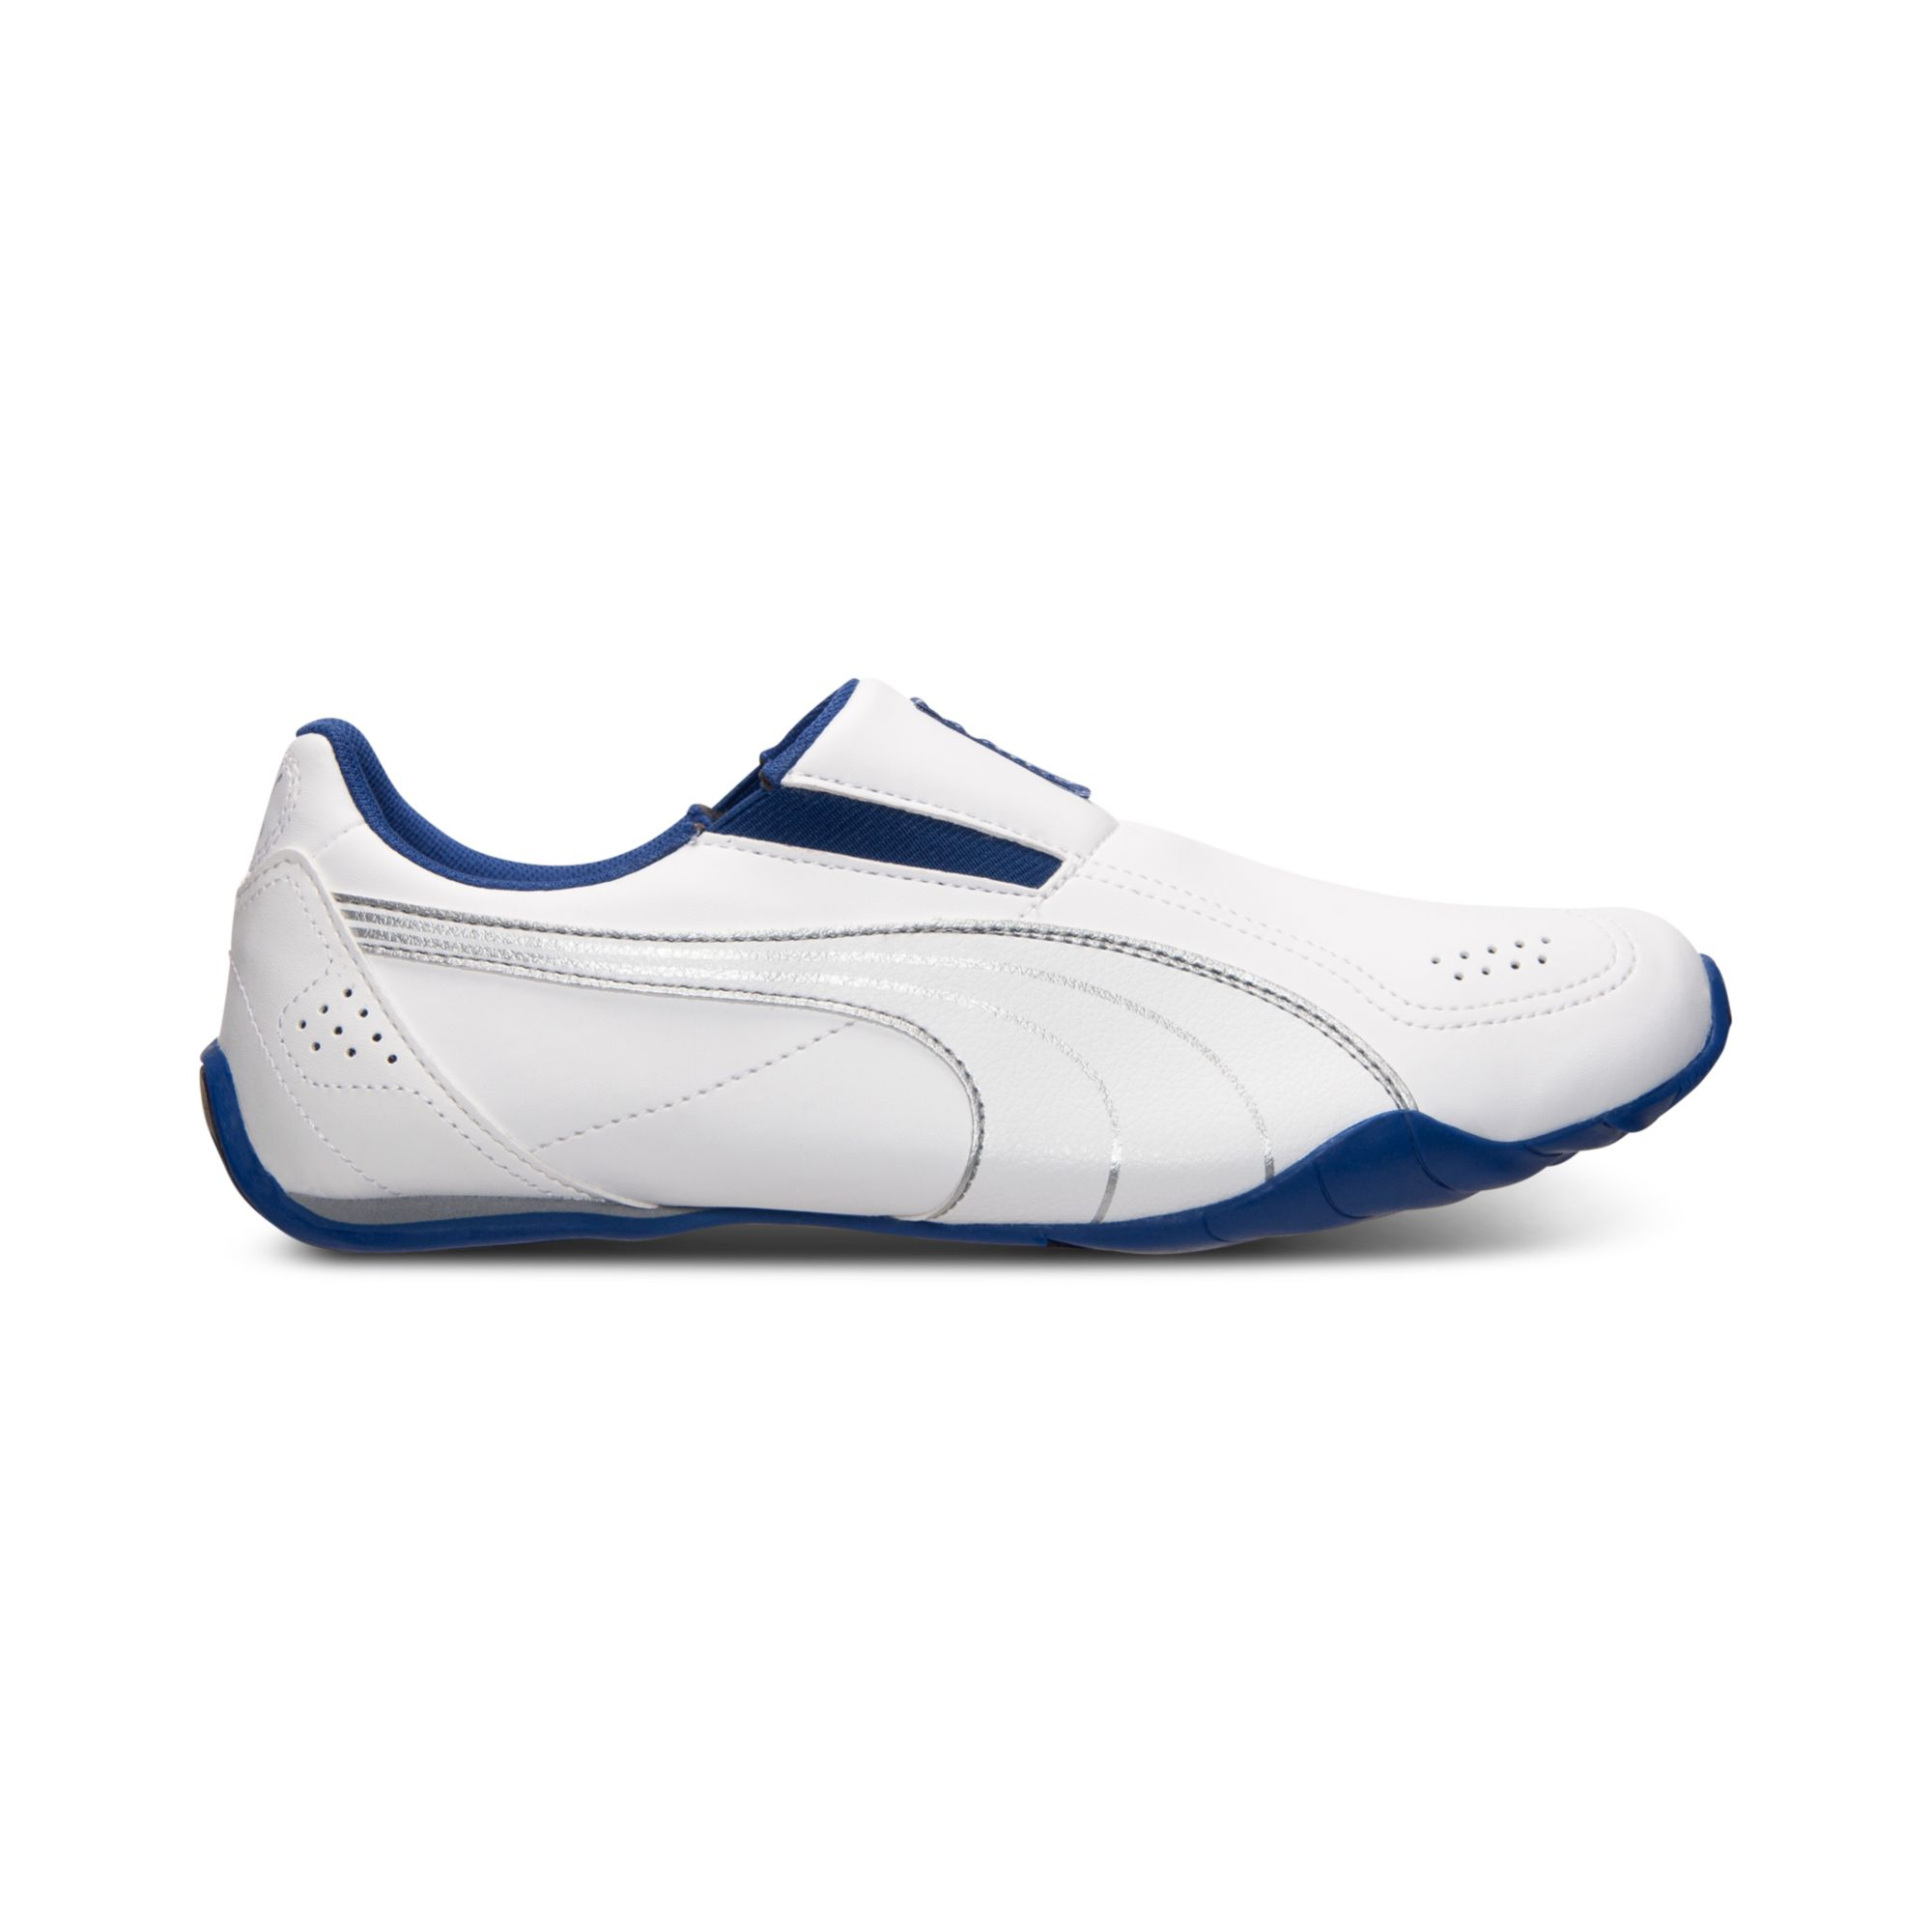 Mens White Leather Slip On Shoes Uk